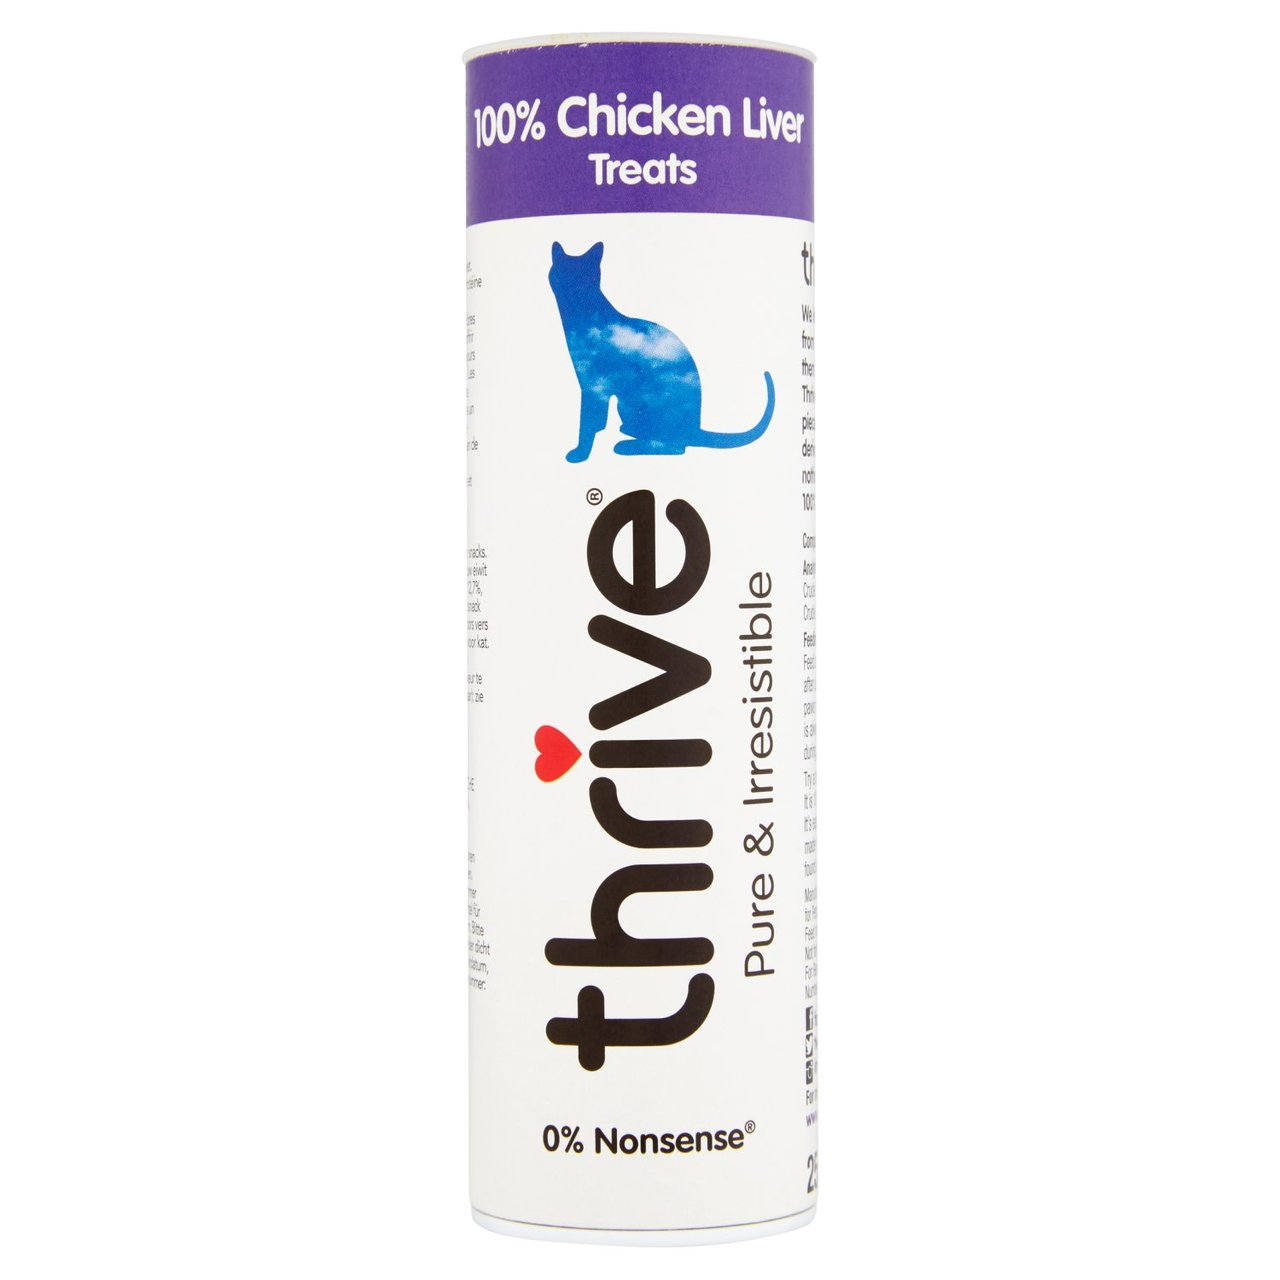 An image of Thrive 100% Chicken Liver Cat Treats